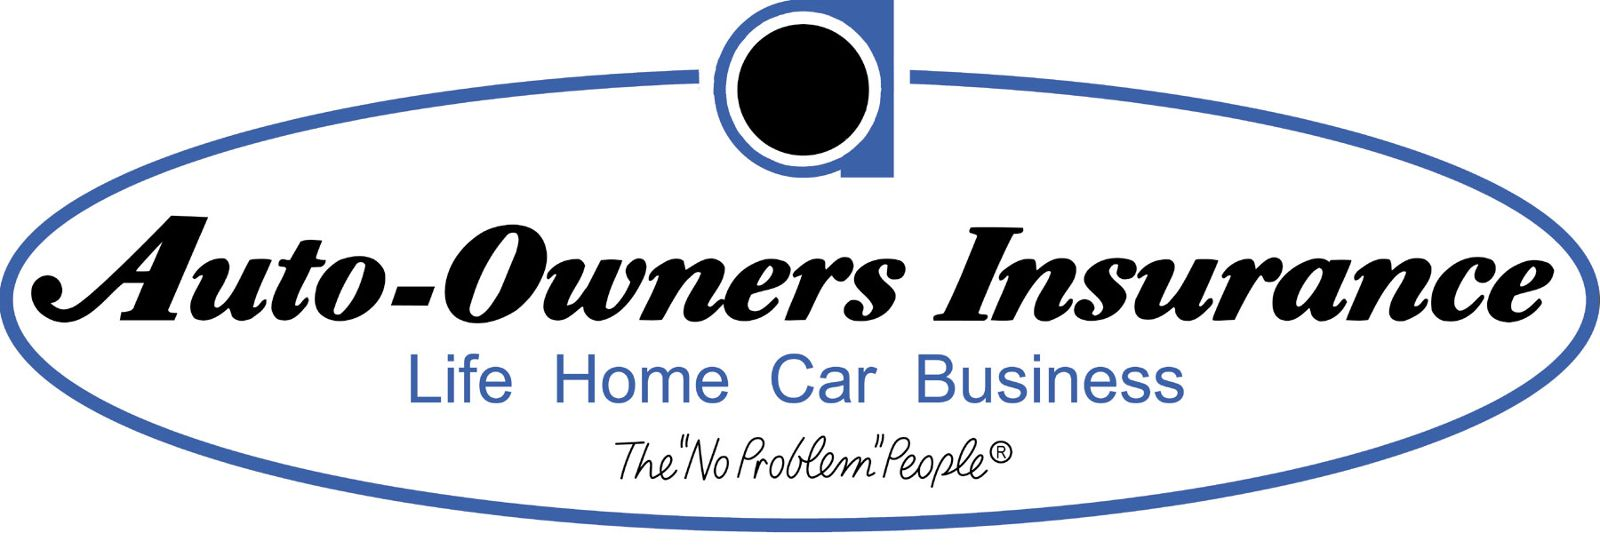 Auto-Owners Insuranc